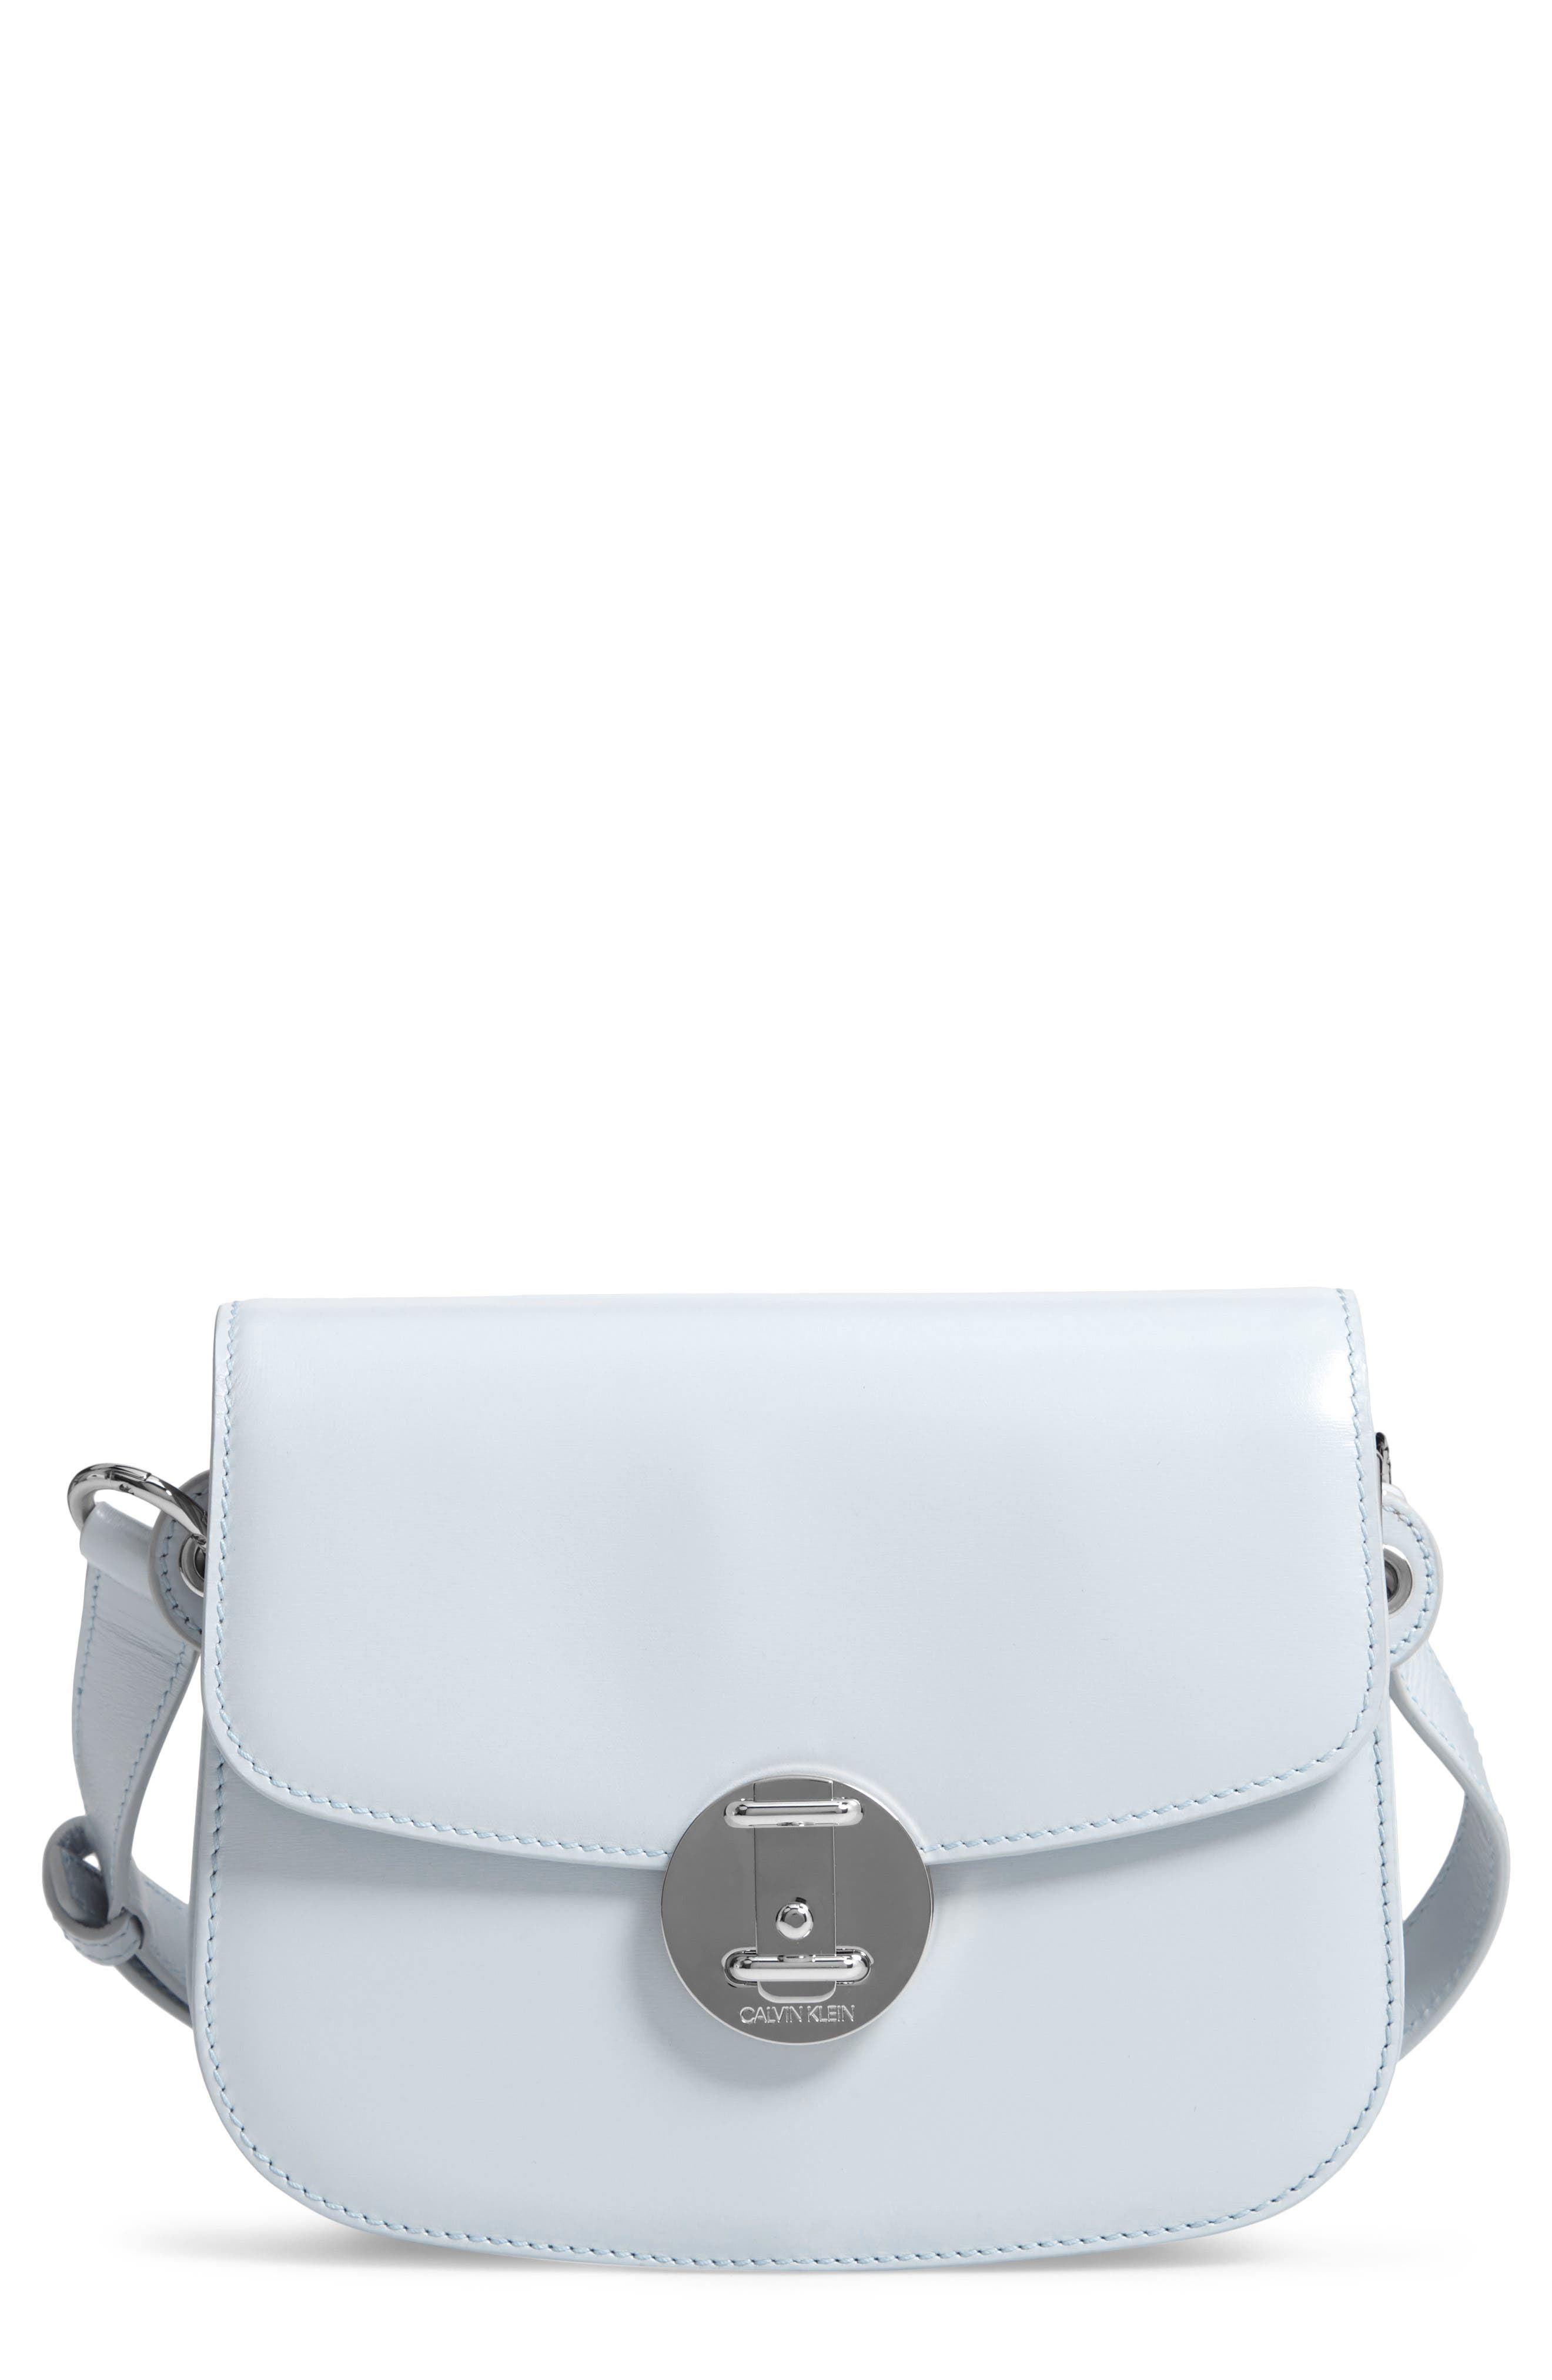 Small Round Lock Leather Shoulder Bag,                             Main thumbnail 1, color,                             CLOUD